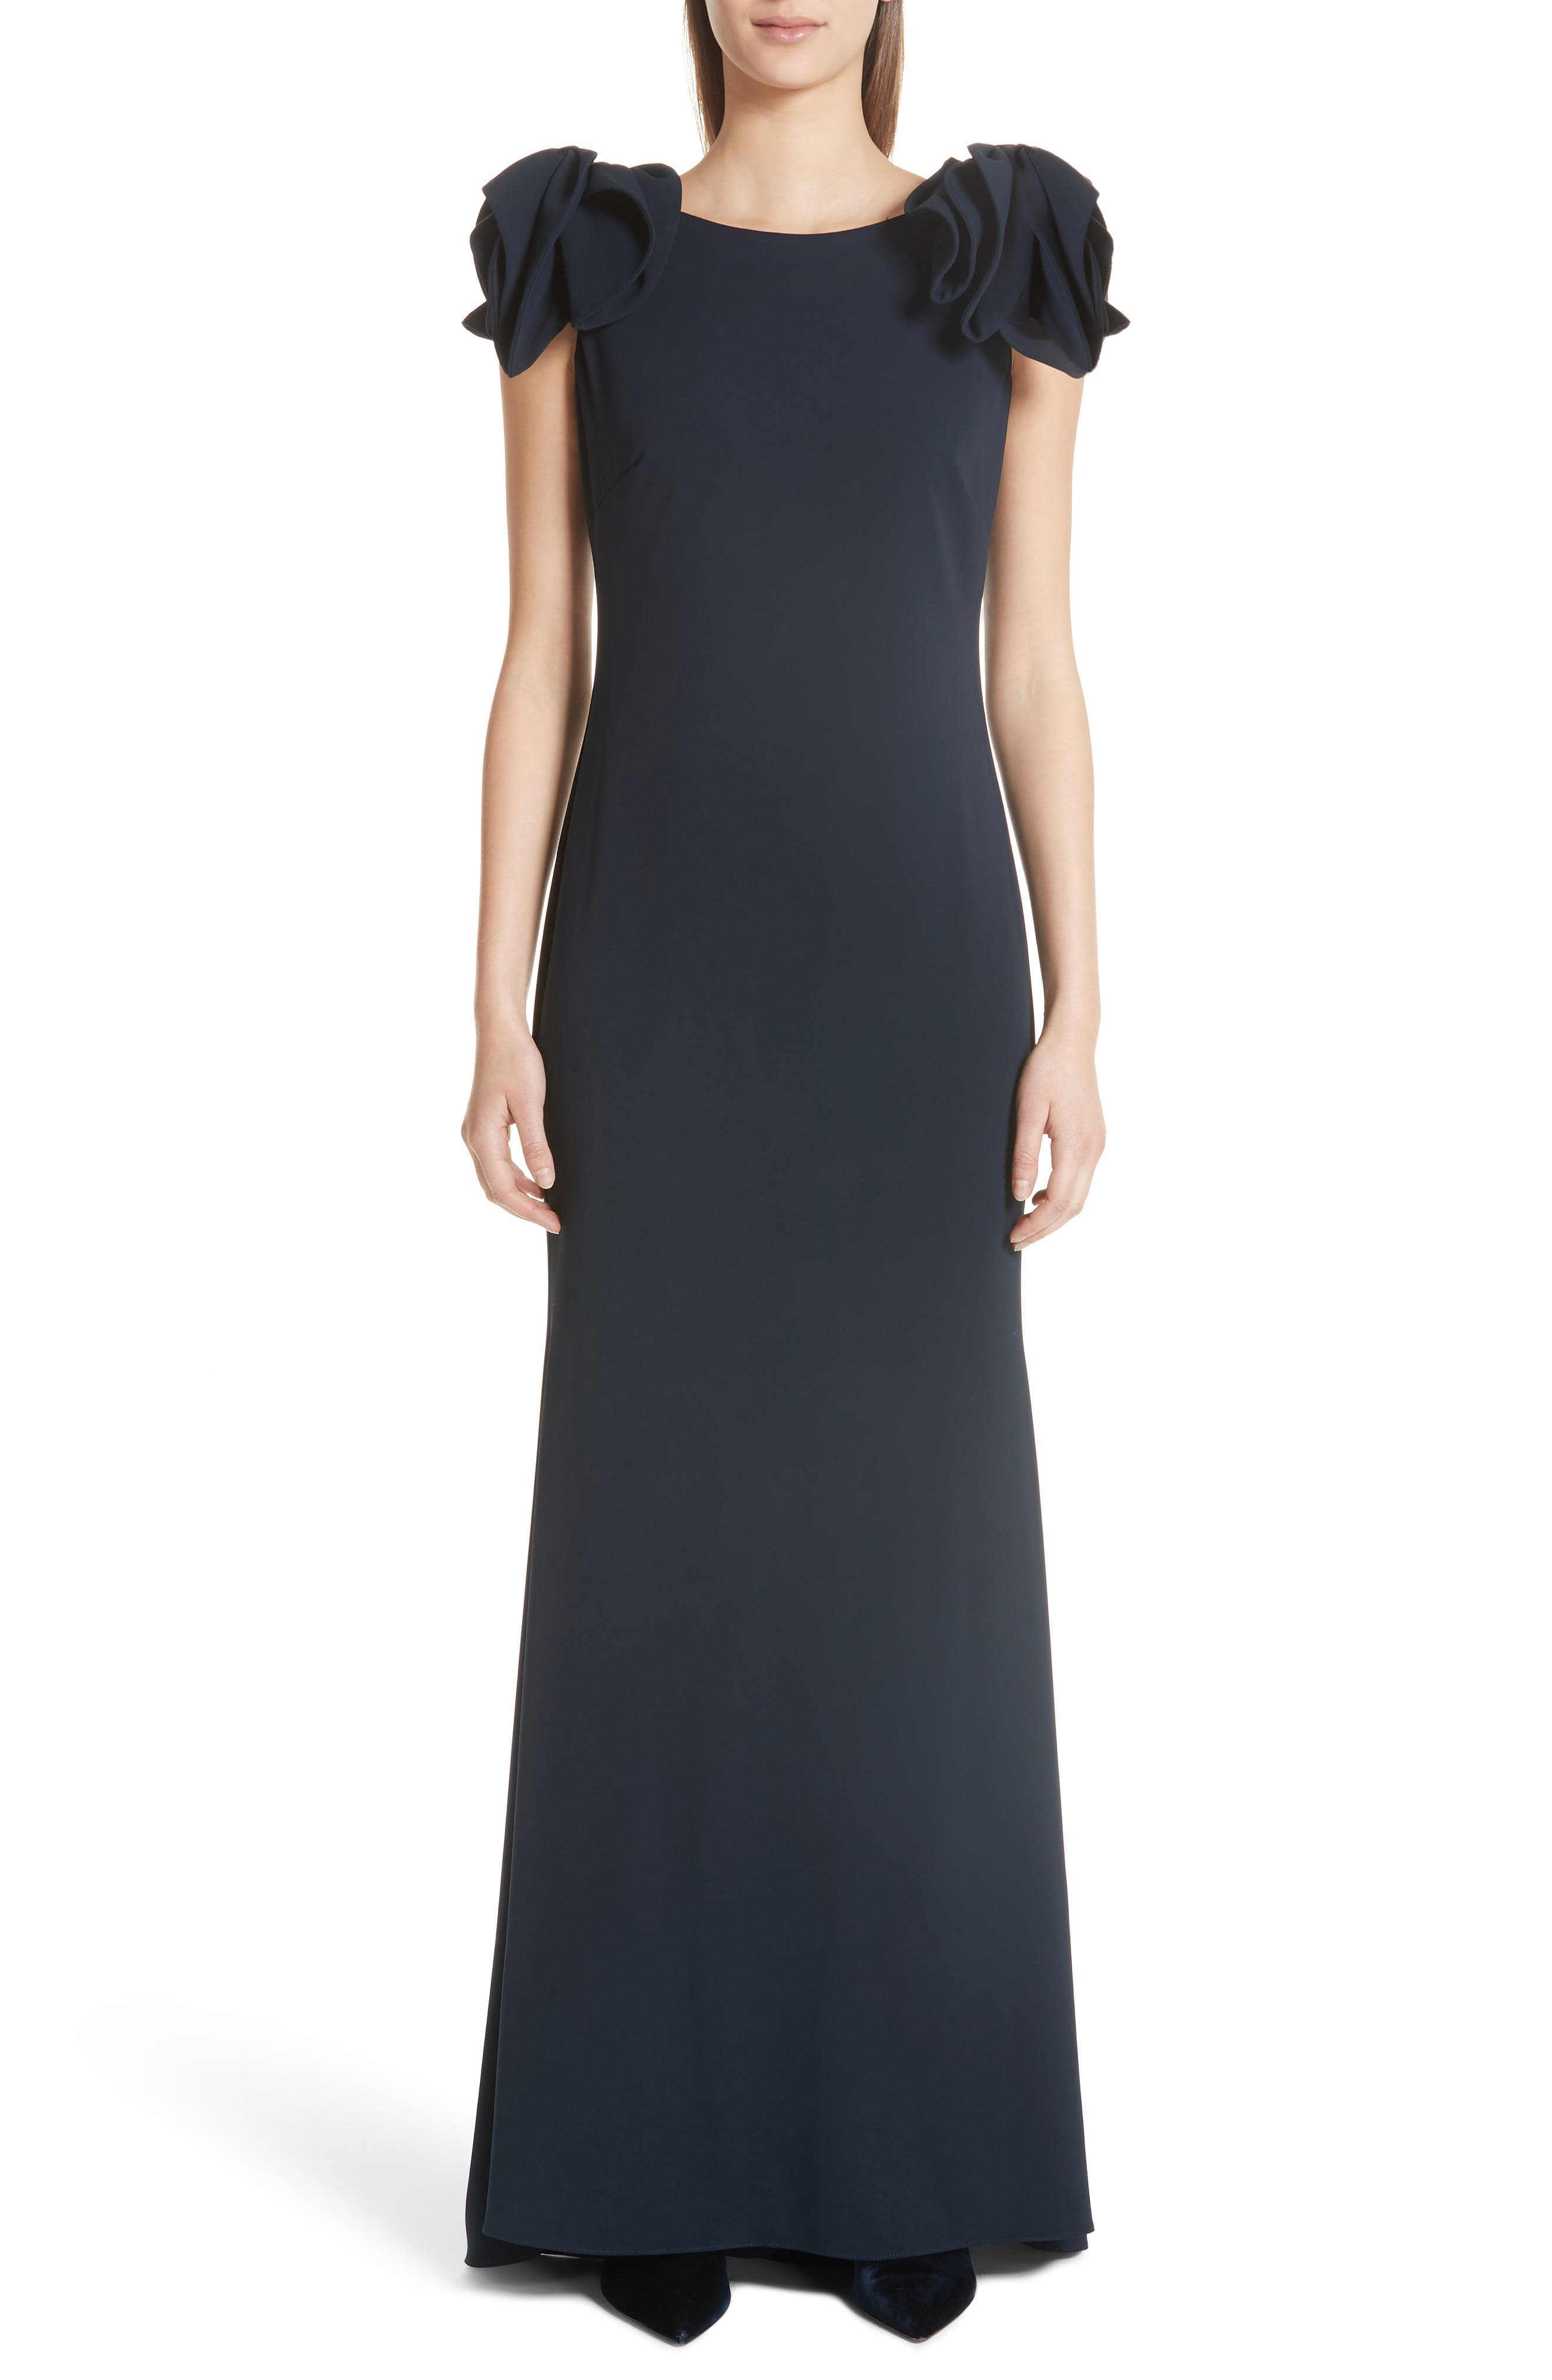 Badgley Mischka Collection Bow Cap Sleeve Gown